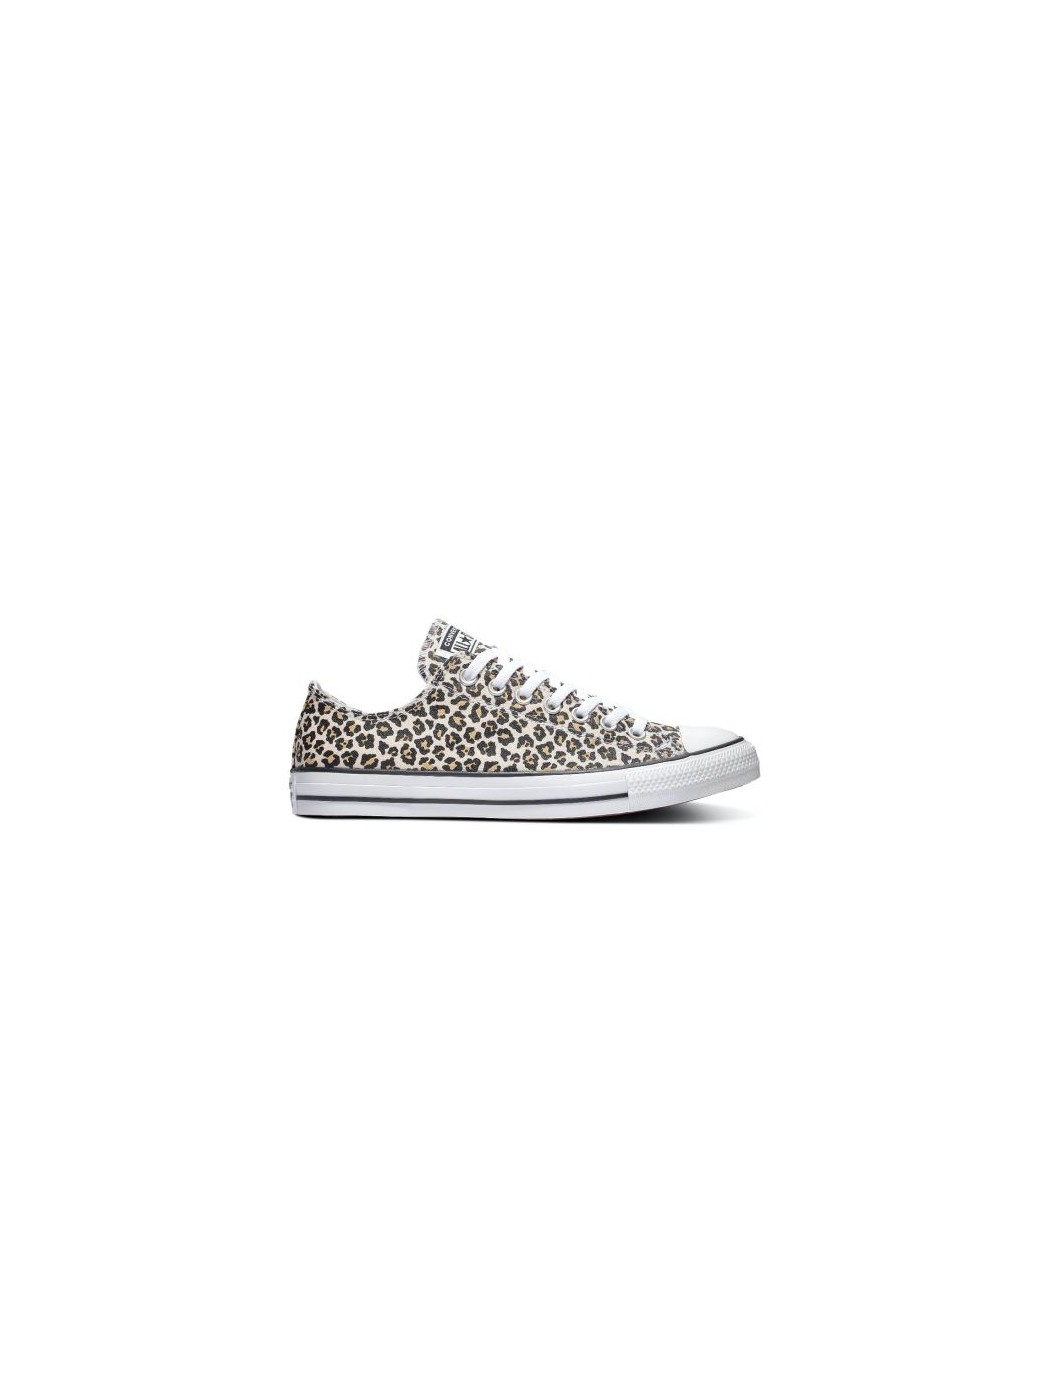 CHUCK TAYLOR ALL STAR ANIMALIER CONVERSE 166260C